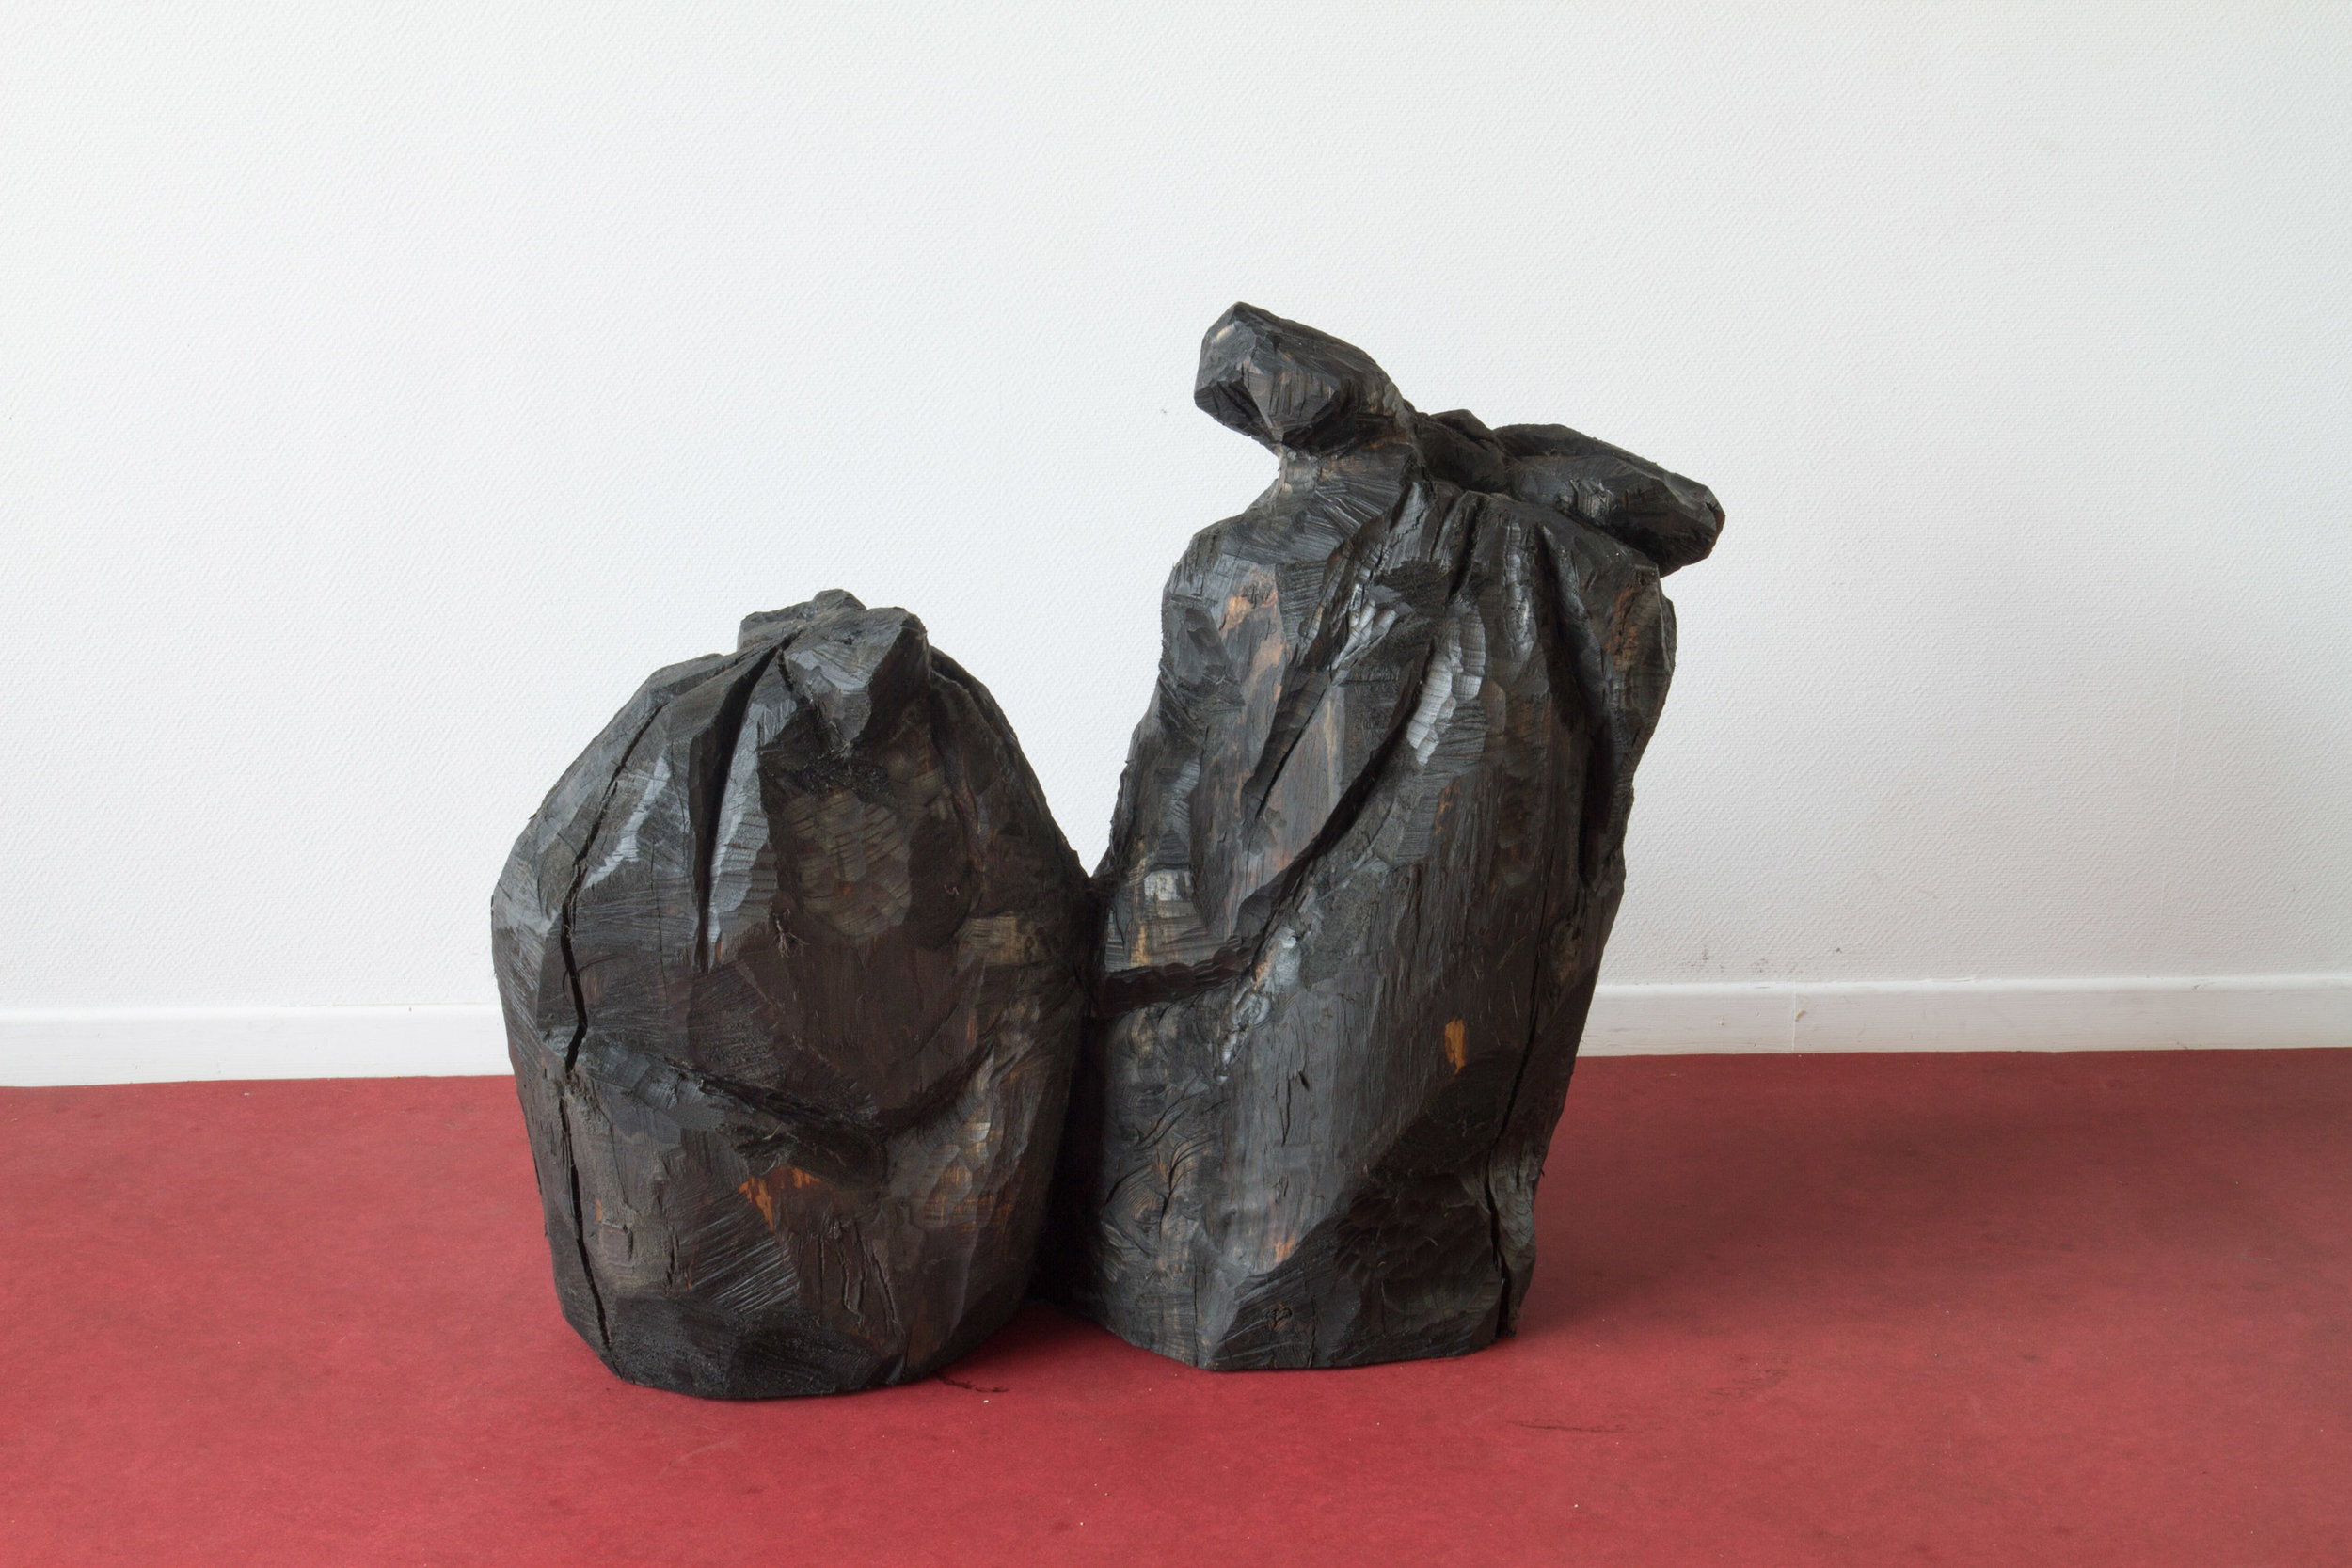 Refuse III (Ordures III), 2016, hand-carved sculpture, found Linden wood and used motor oil patina, 1 m x 1m x 50 cm. $5000